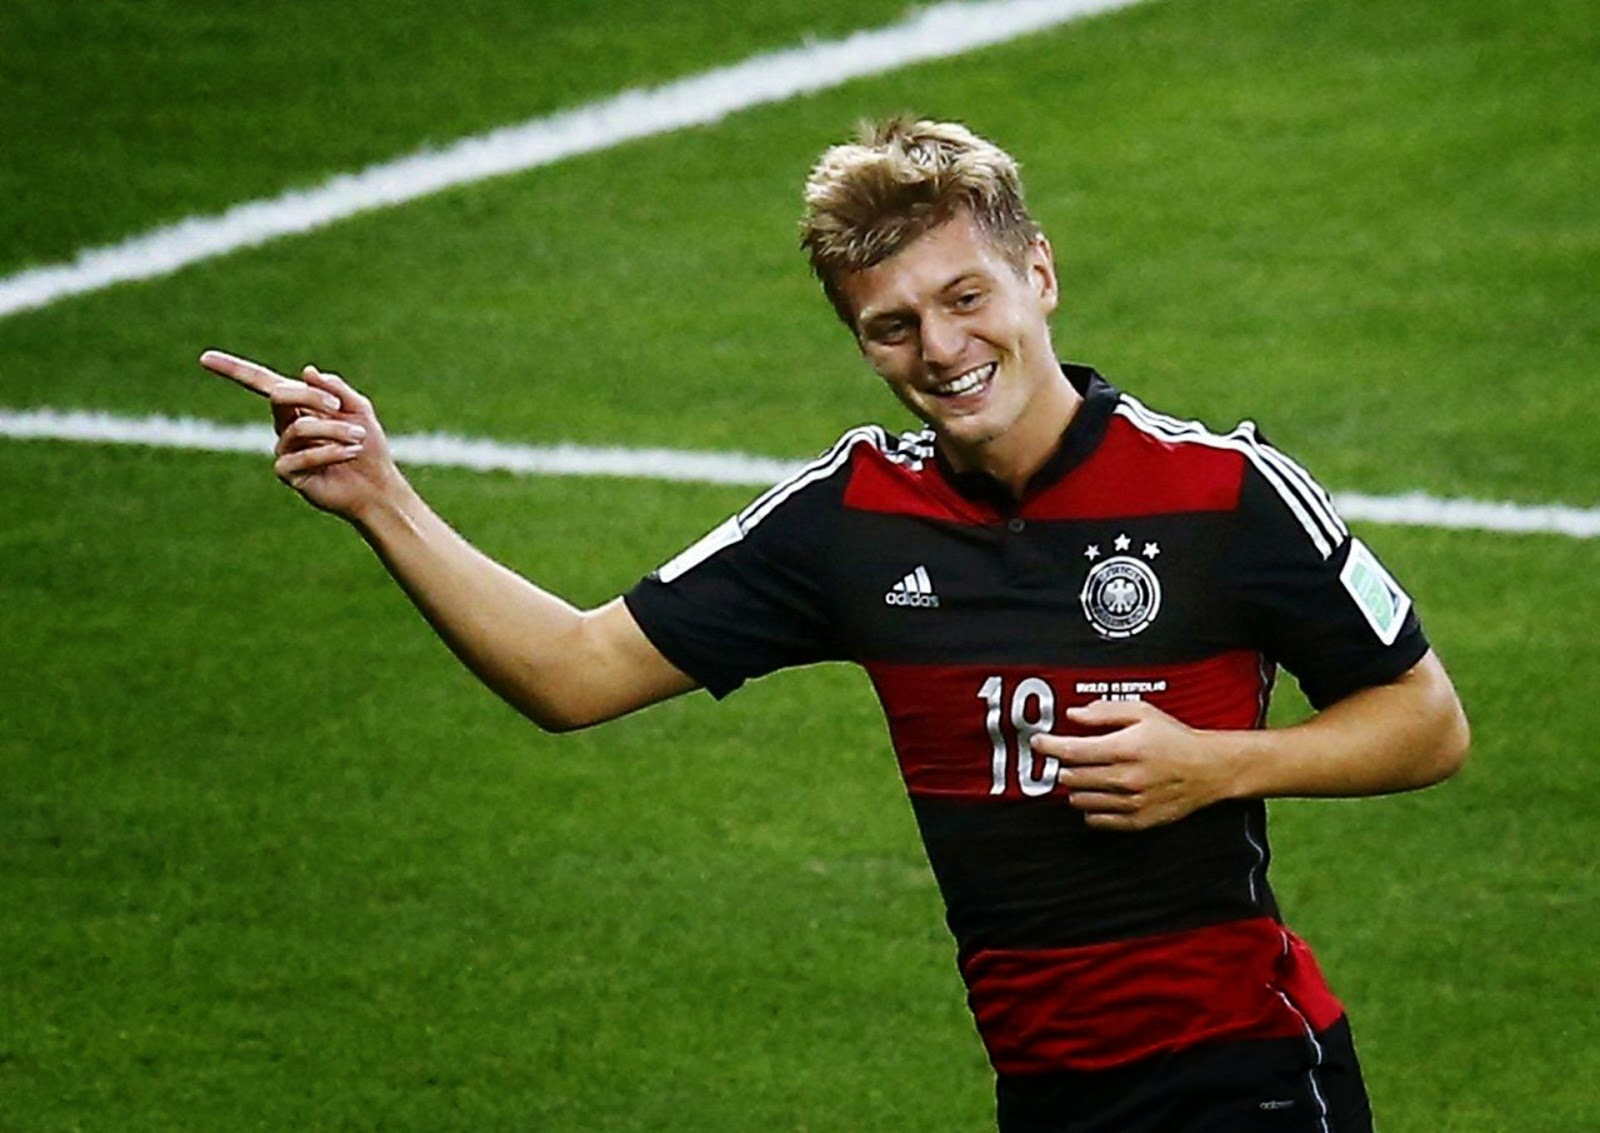 HD Toni Kroos 2014 FIFA World Cup Wallpapers